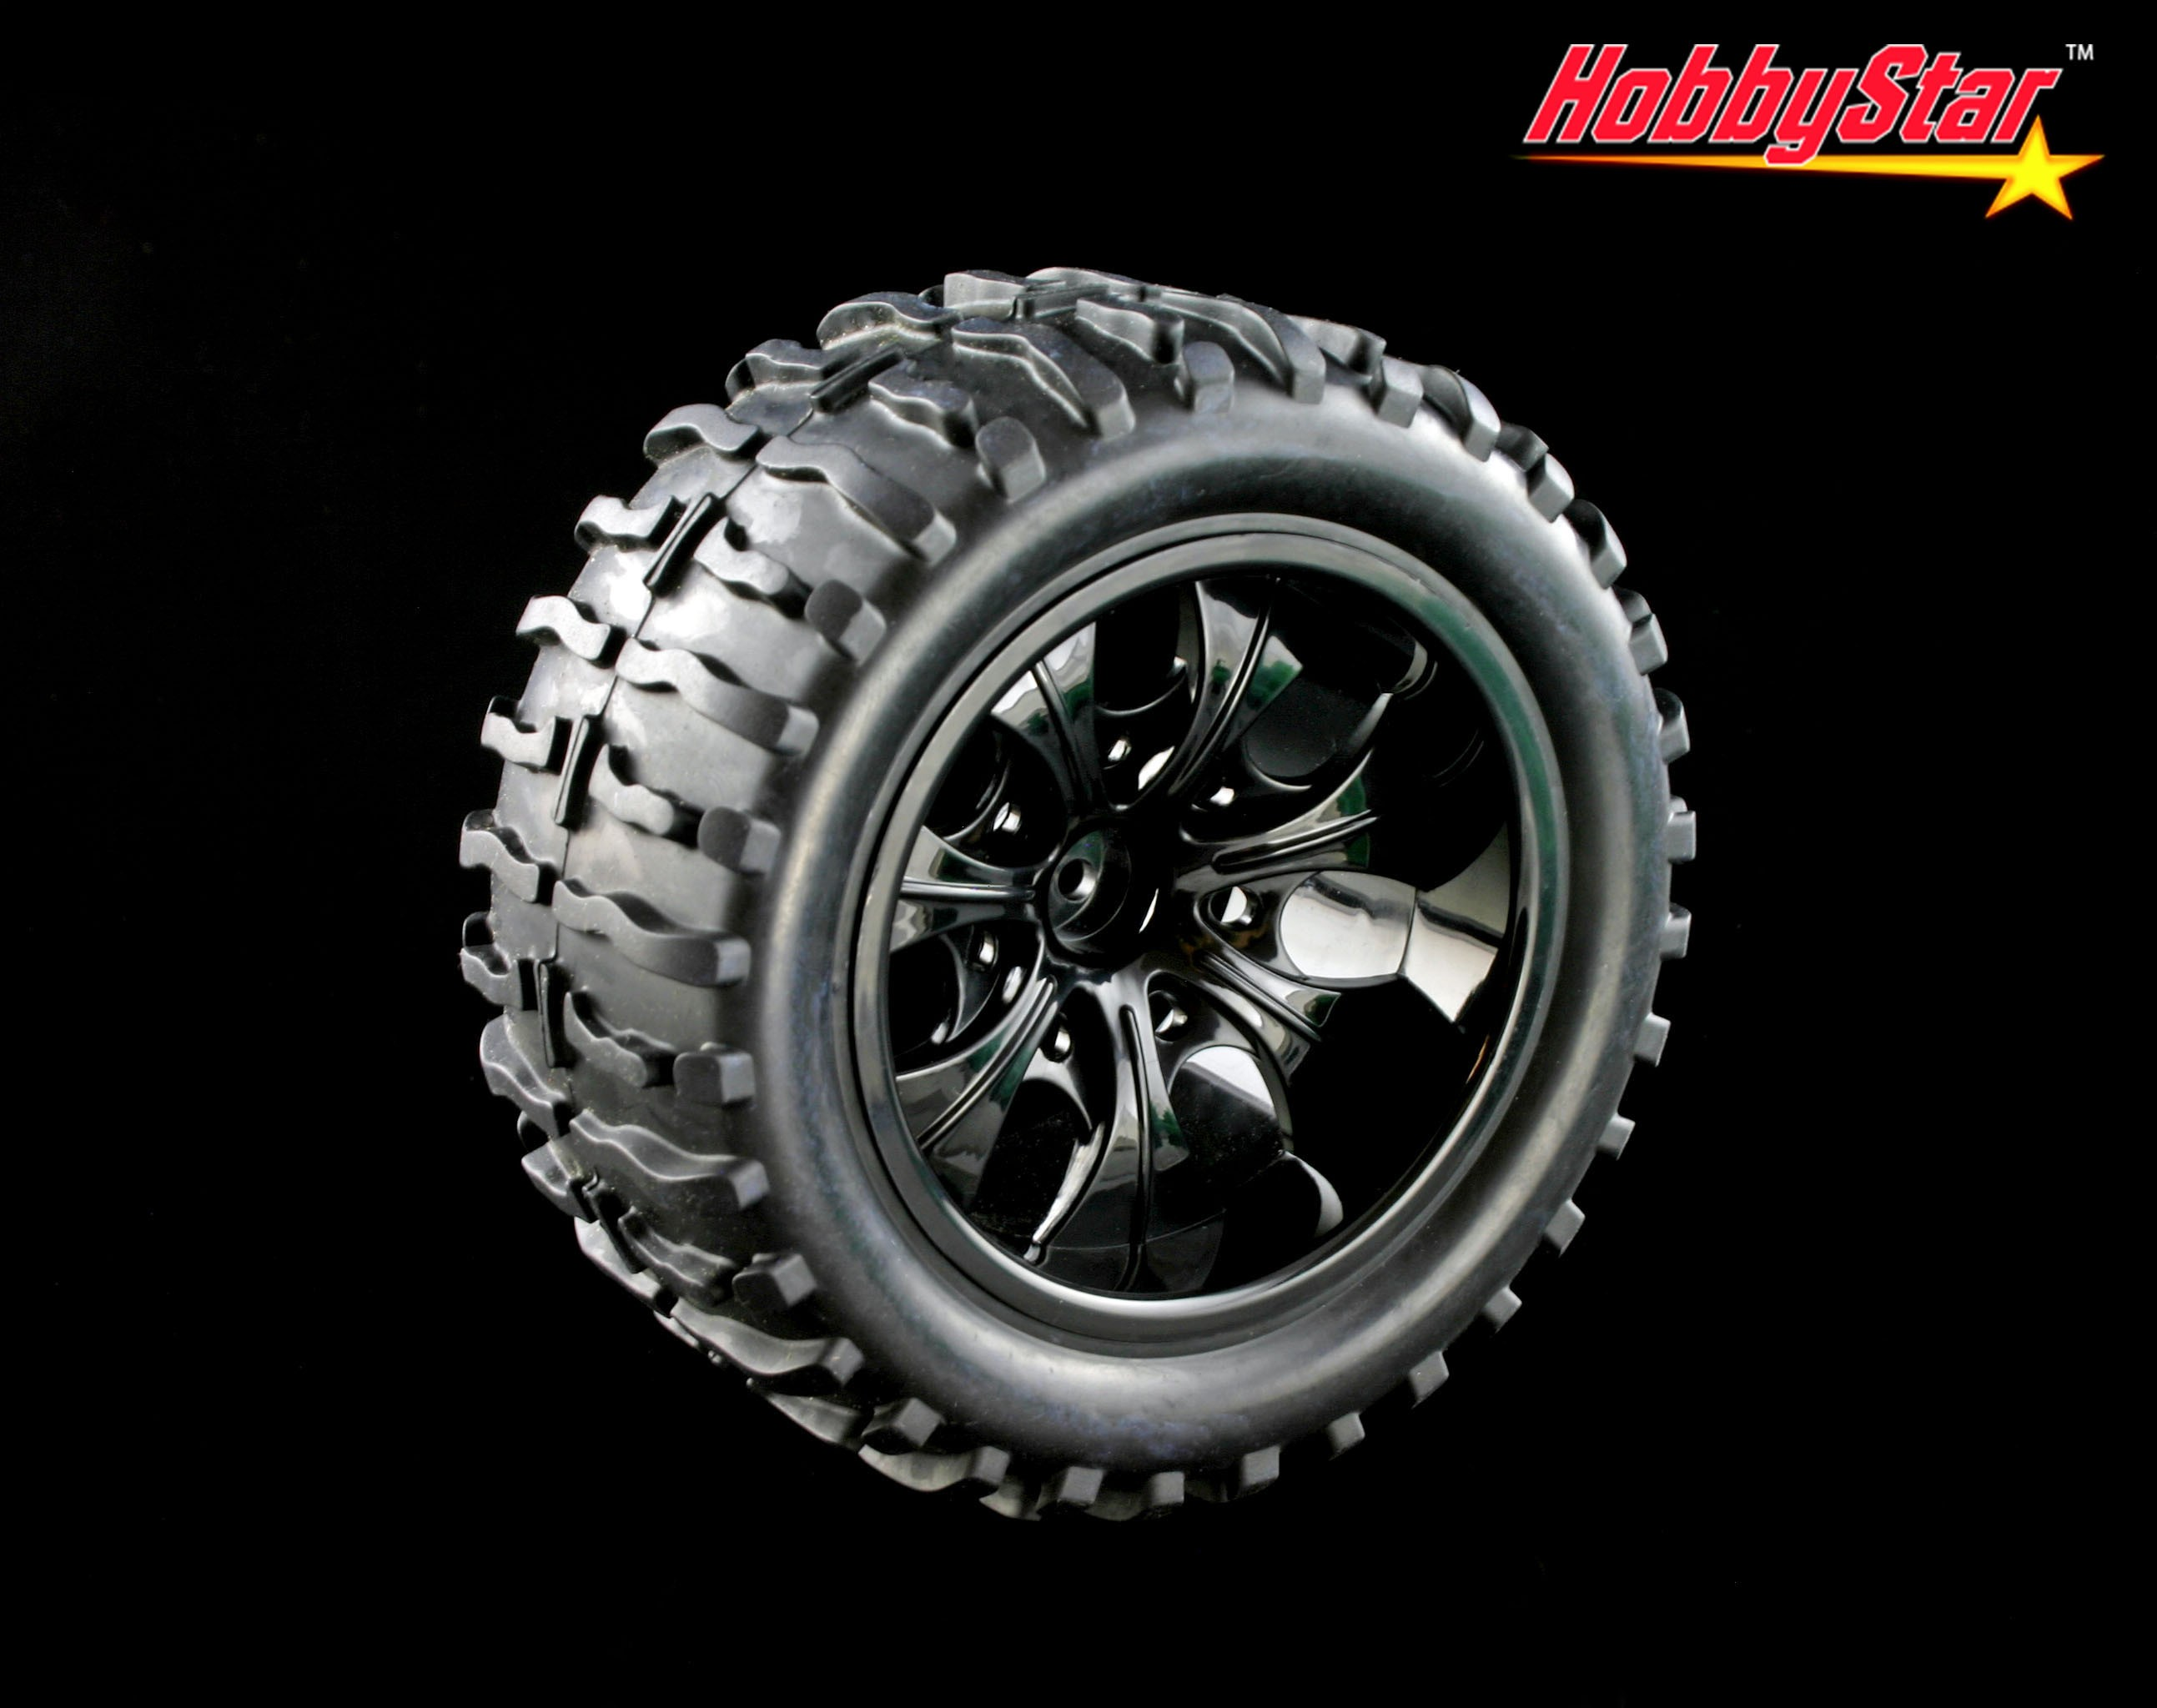 HobbyStar Sling-Star Tires On Blade Wheels, 1/10 MT